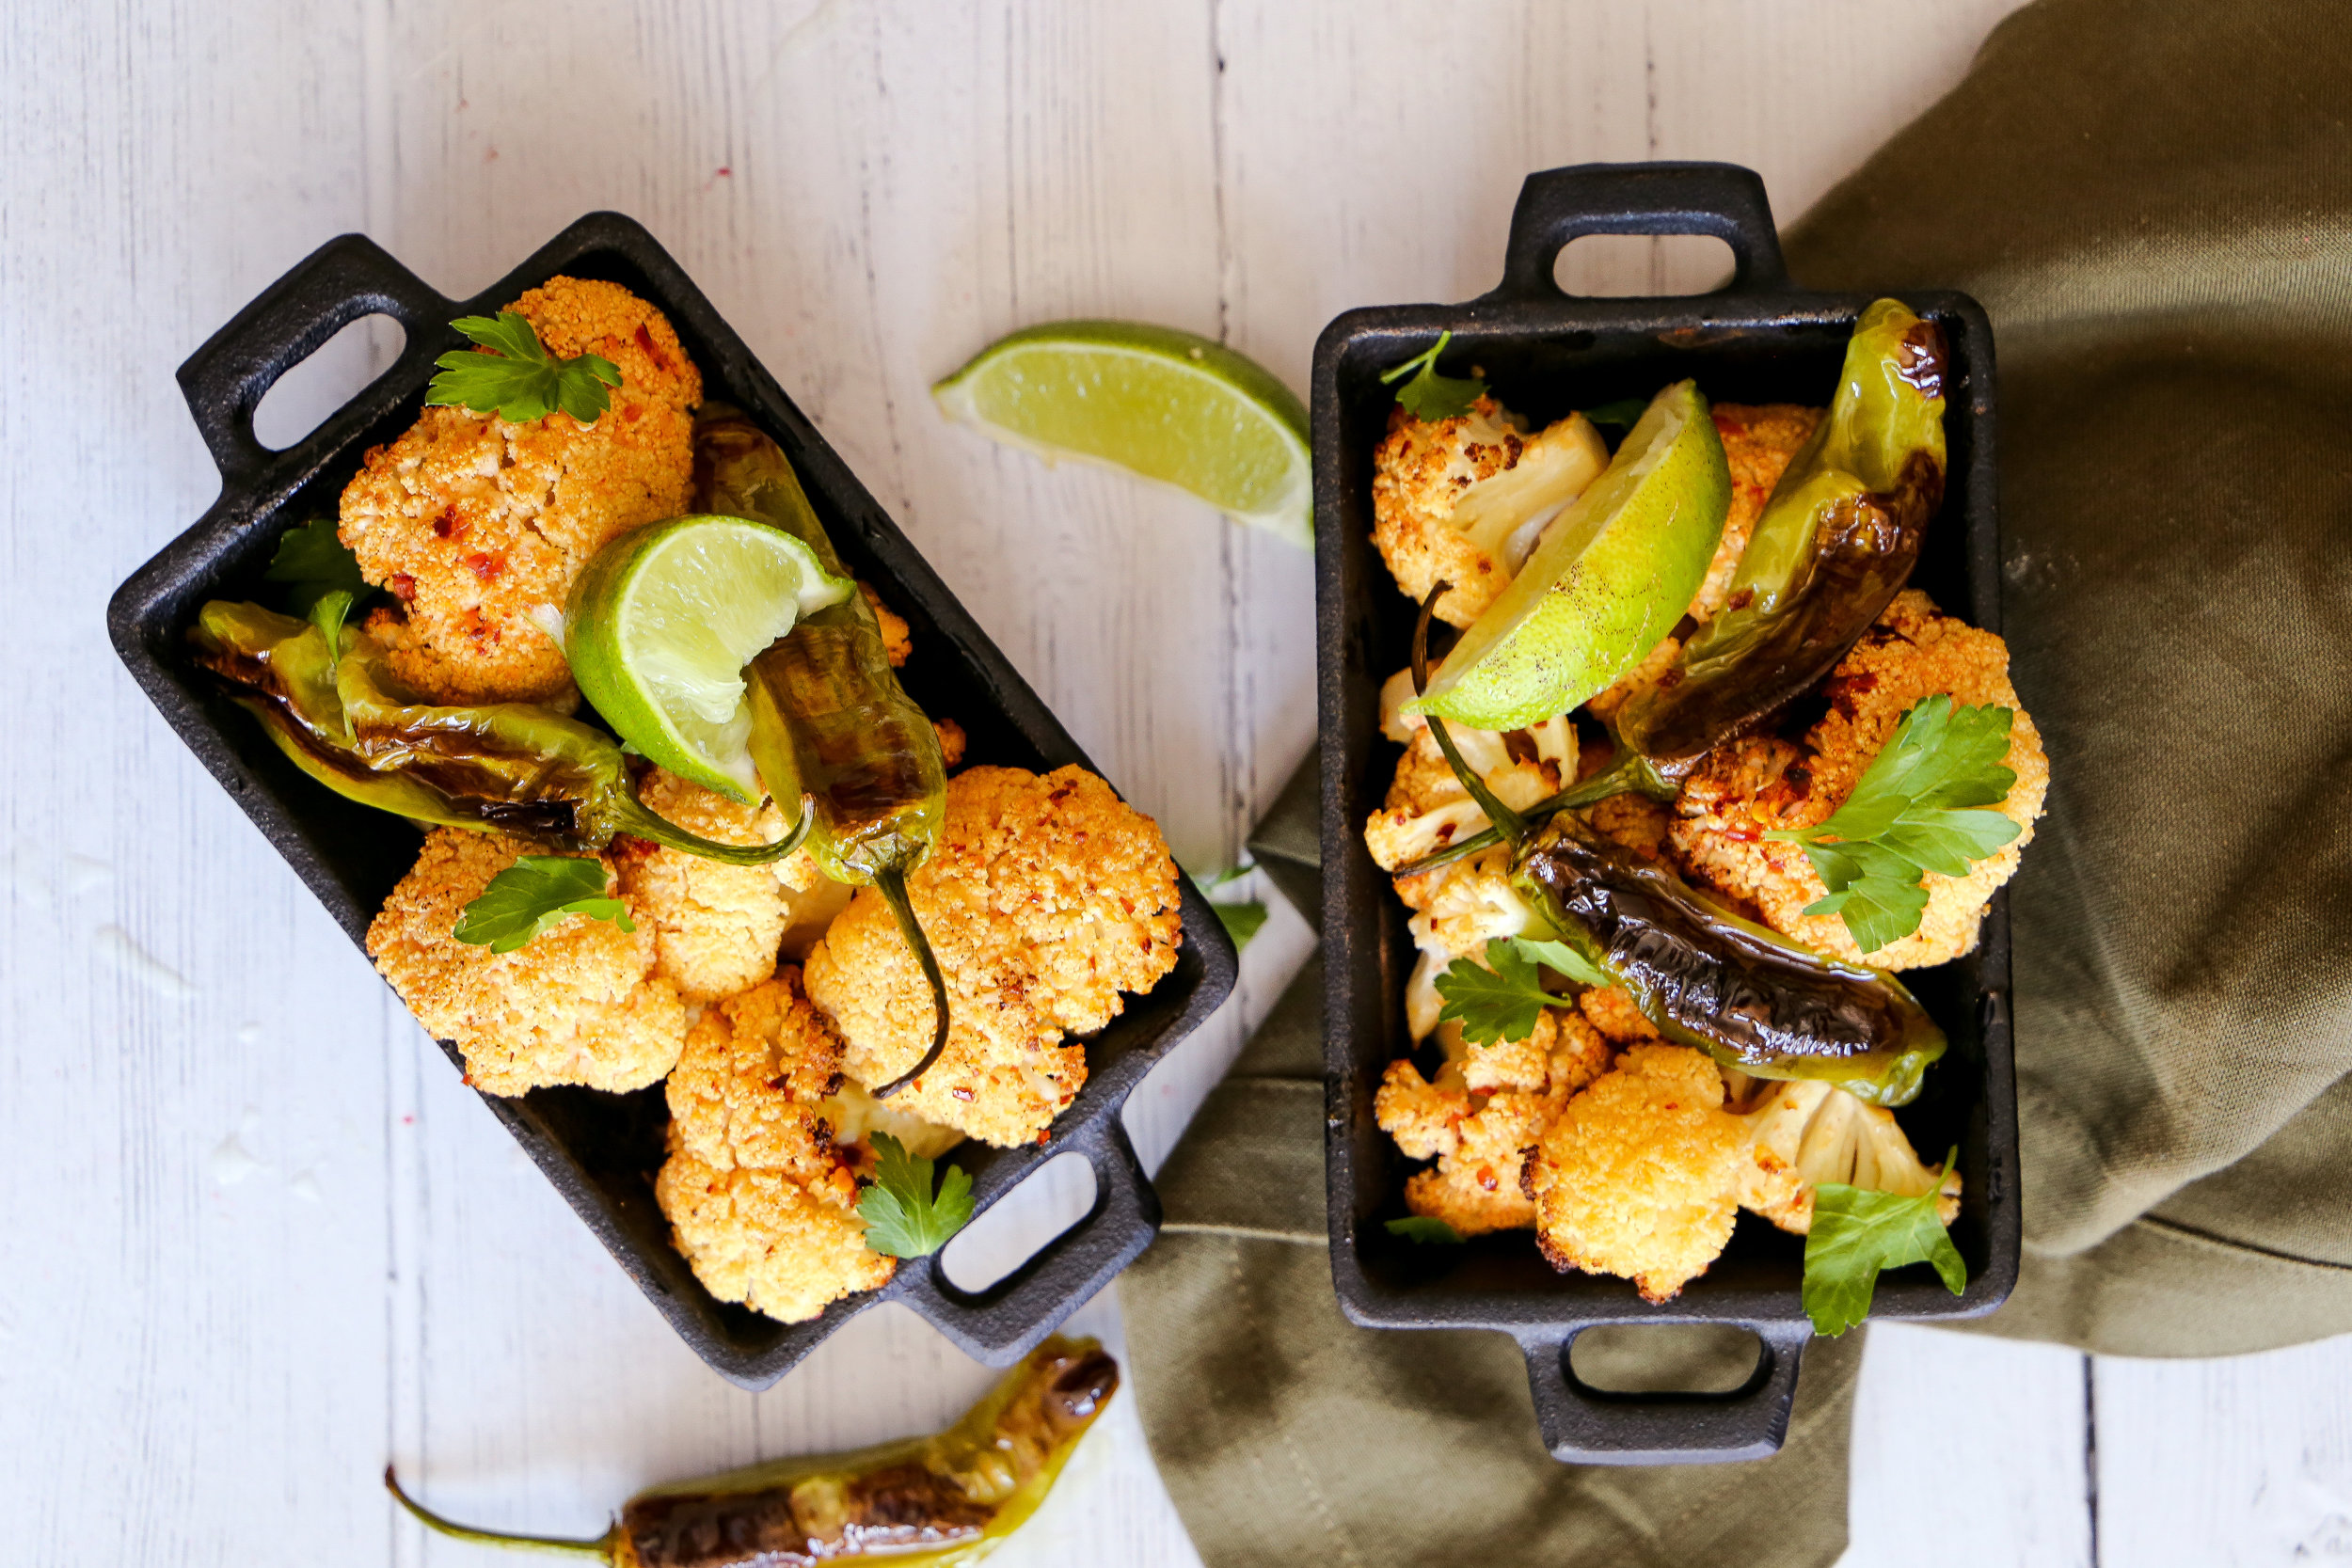 Spicy Cauliflower Wings - Because vegetarians just wanna have fun.